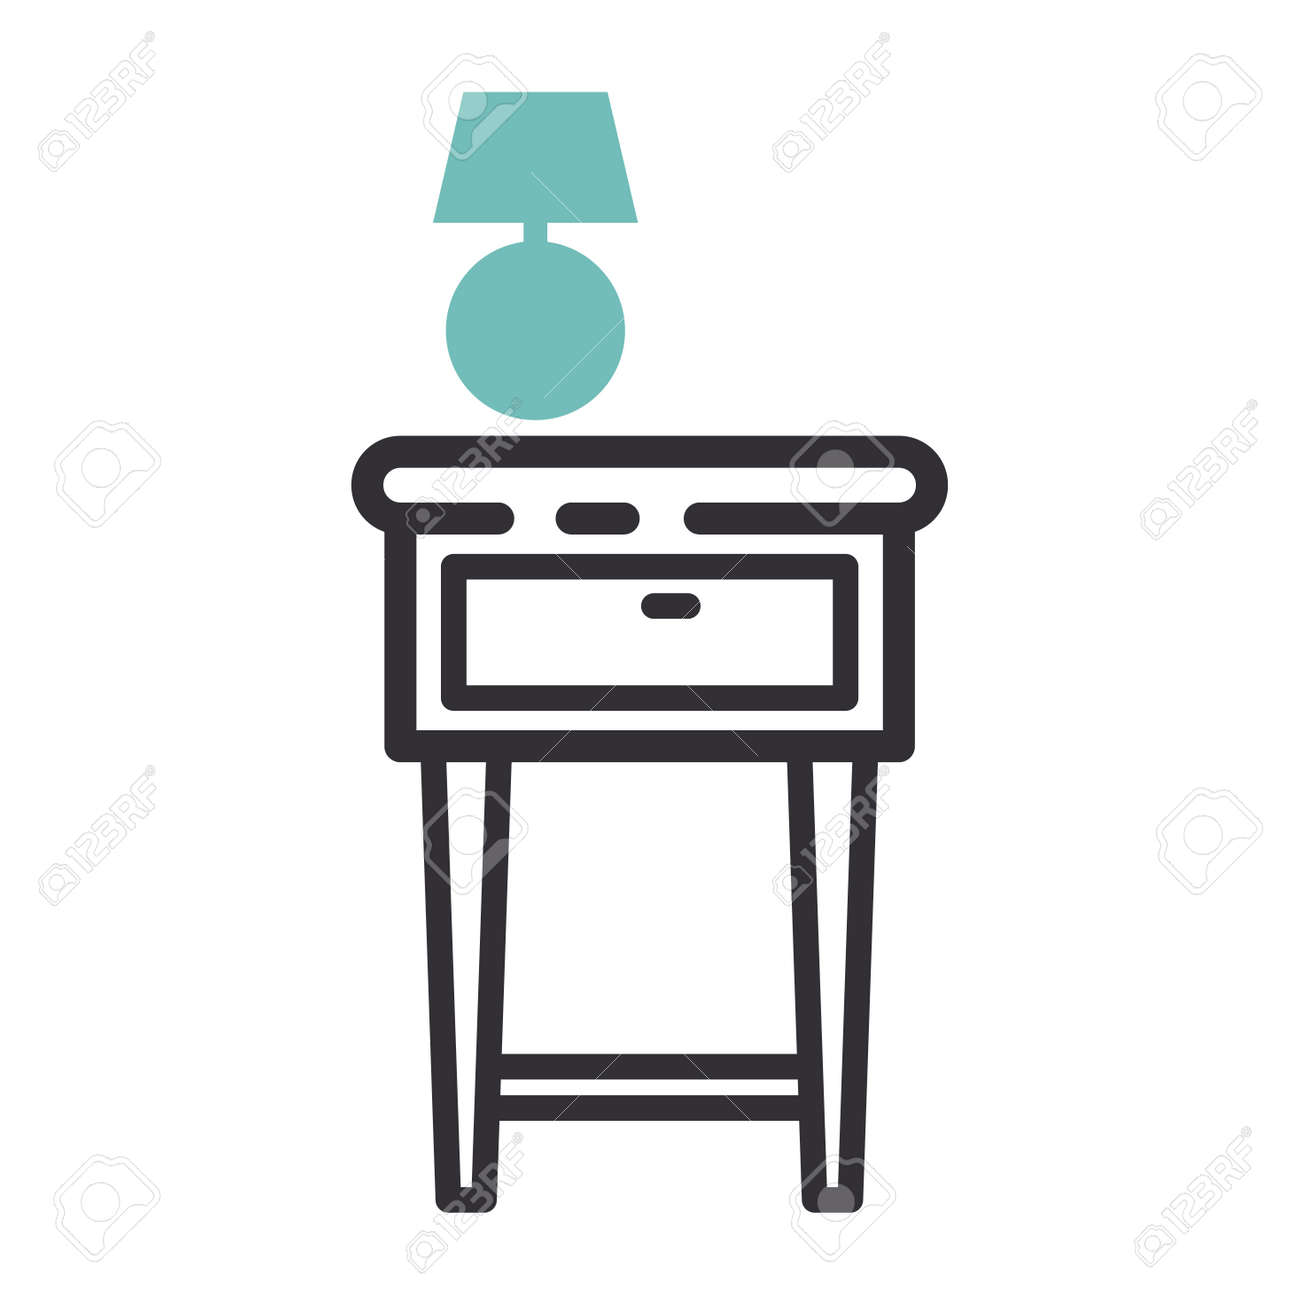 Furniture And Home Decor Icon Vector Illustration. Indoor Cabinet Interior  Room Sign, Office Bookshelf